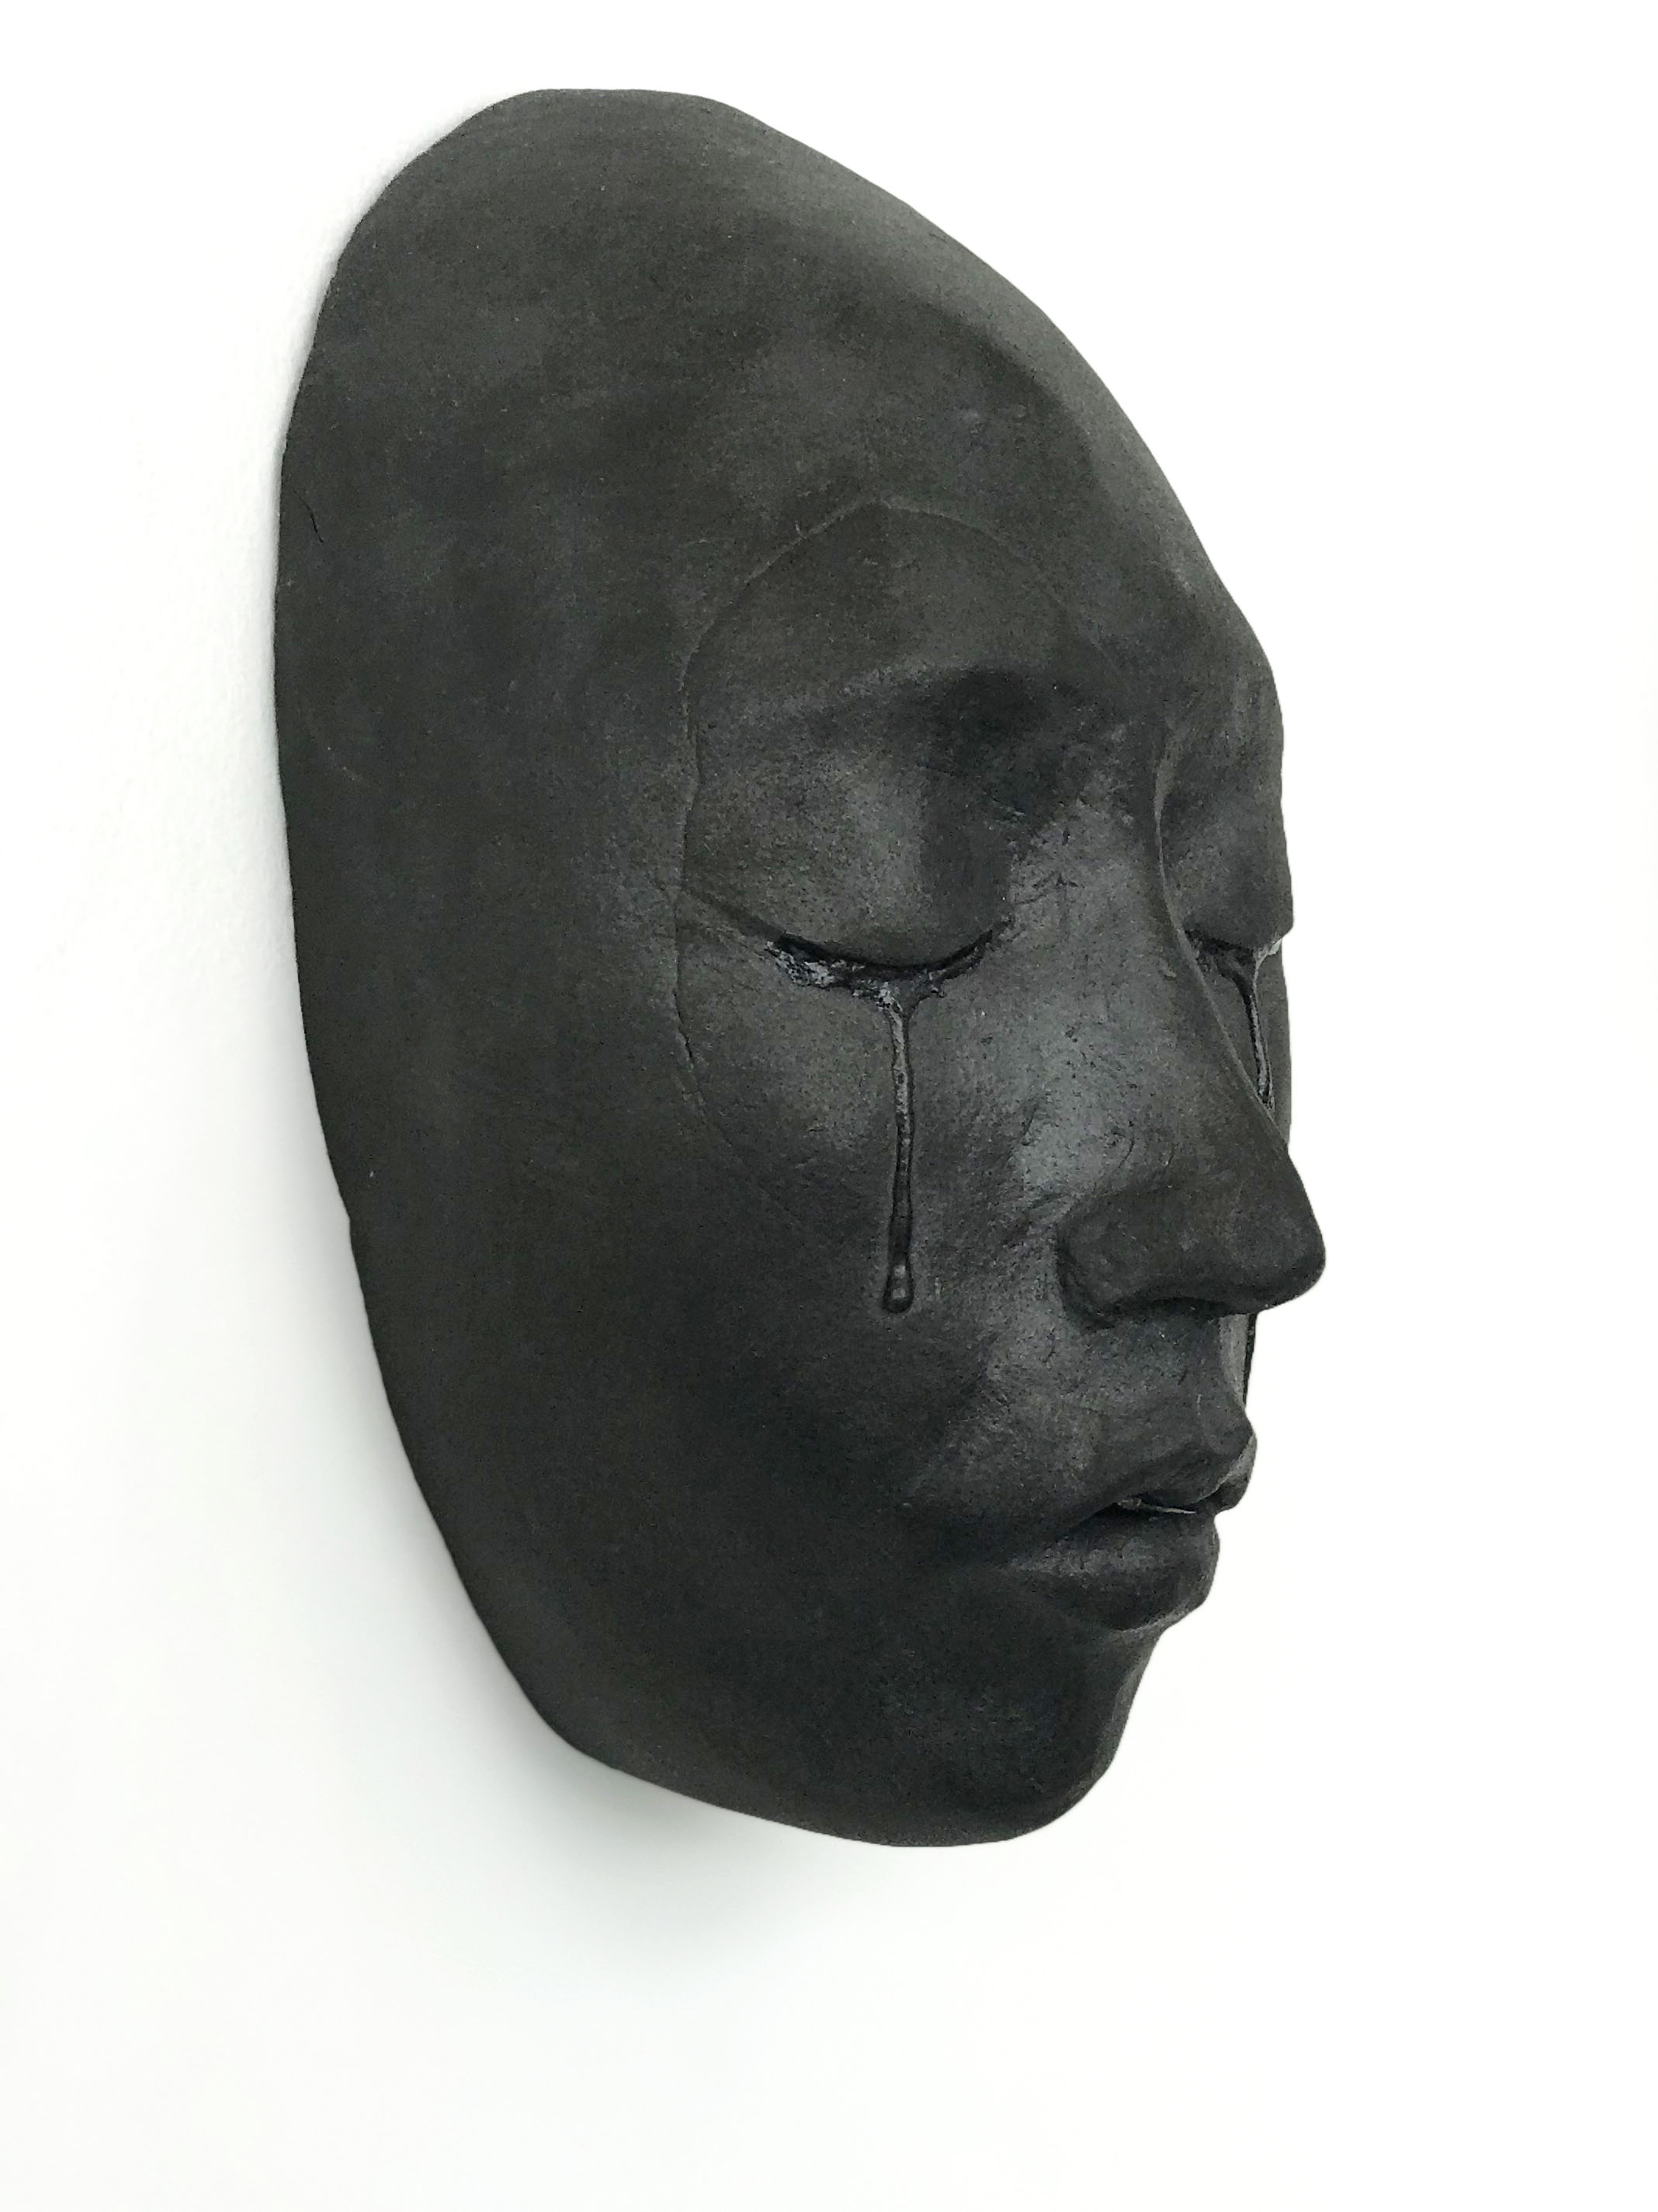 a black ceramic face mounted on a white wall, with a regretful facial expression and tears falling from closed eyes with a closed mouth.